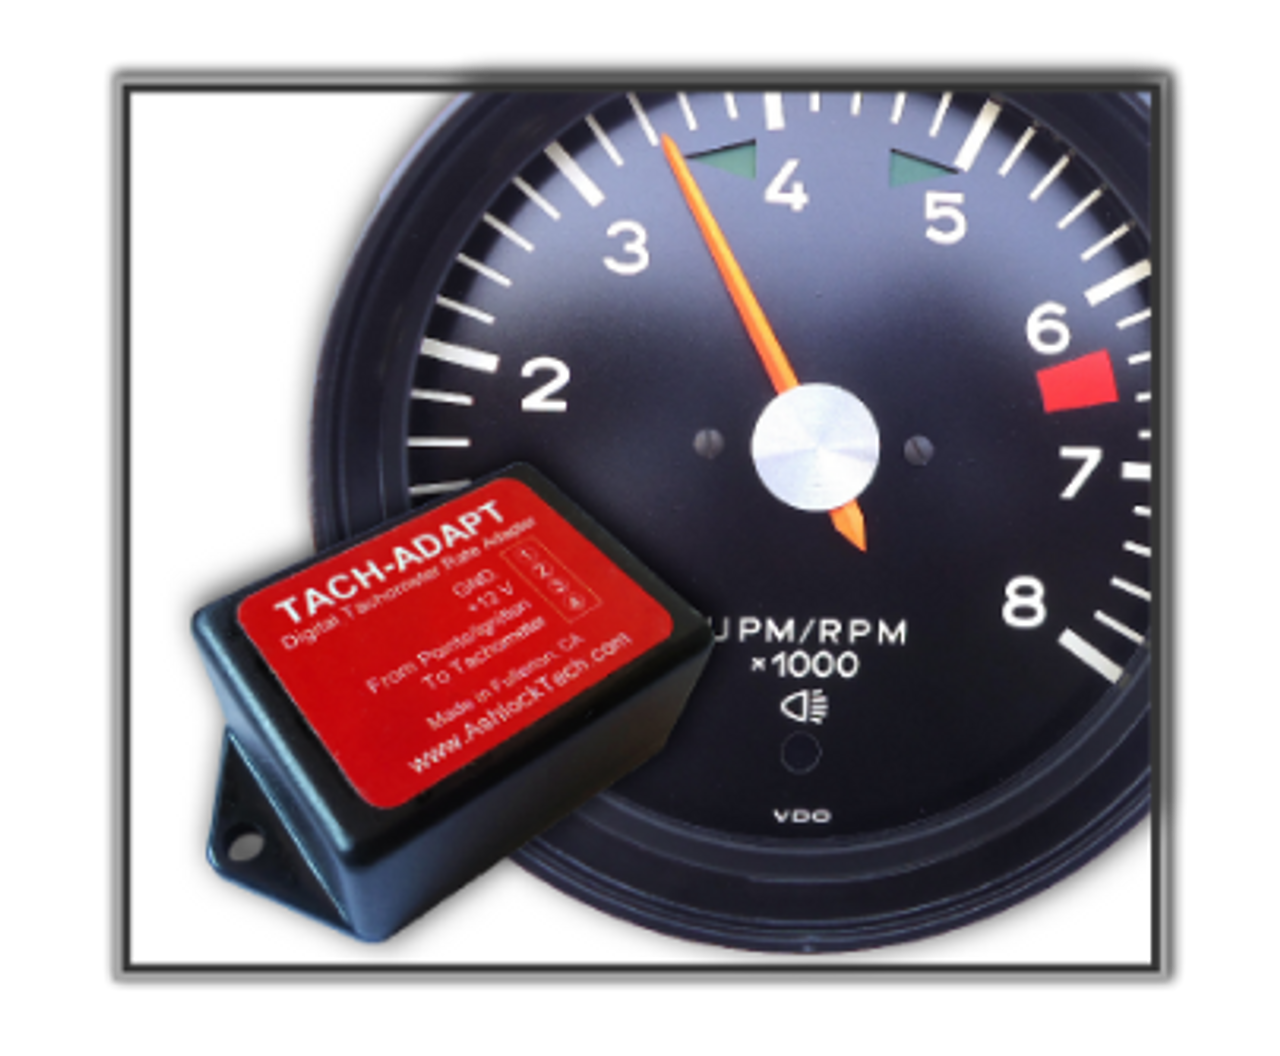 Tachometer Adapter - Makes your tachometer operate again